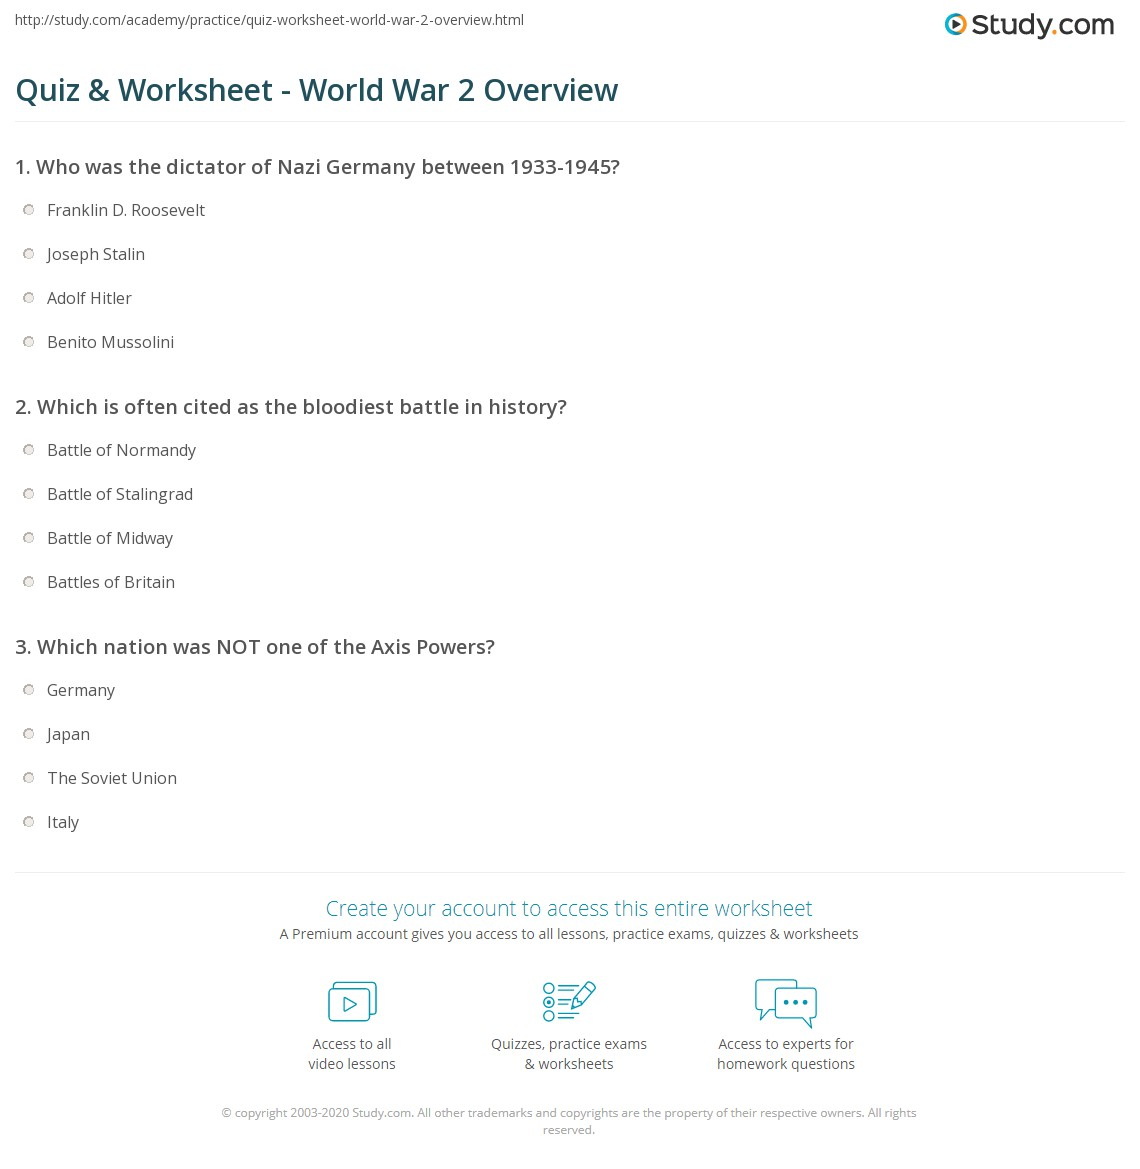 Quiz Worksheet World War 2 Overview Study